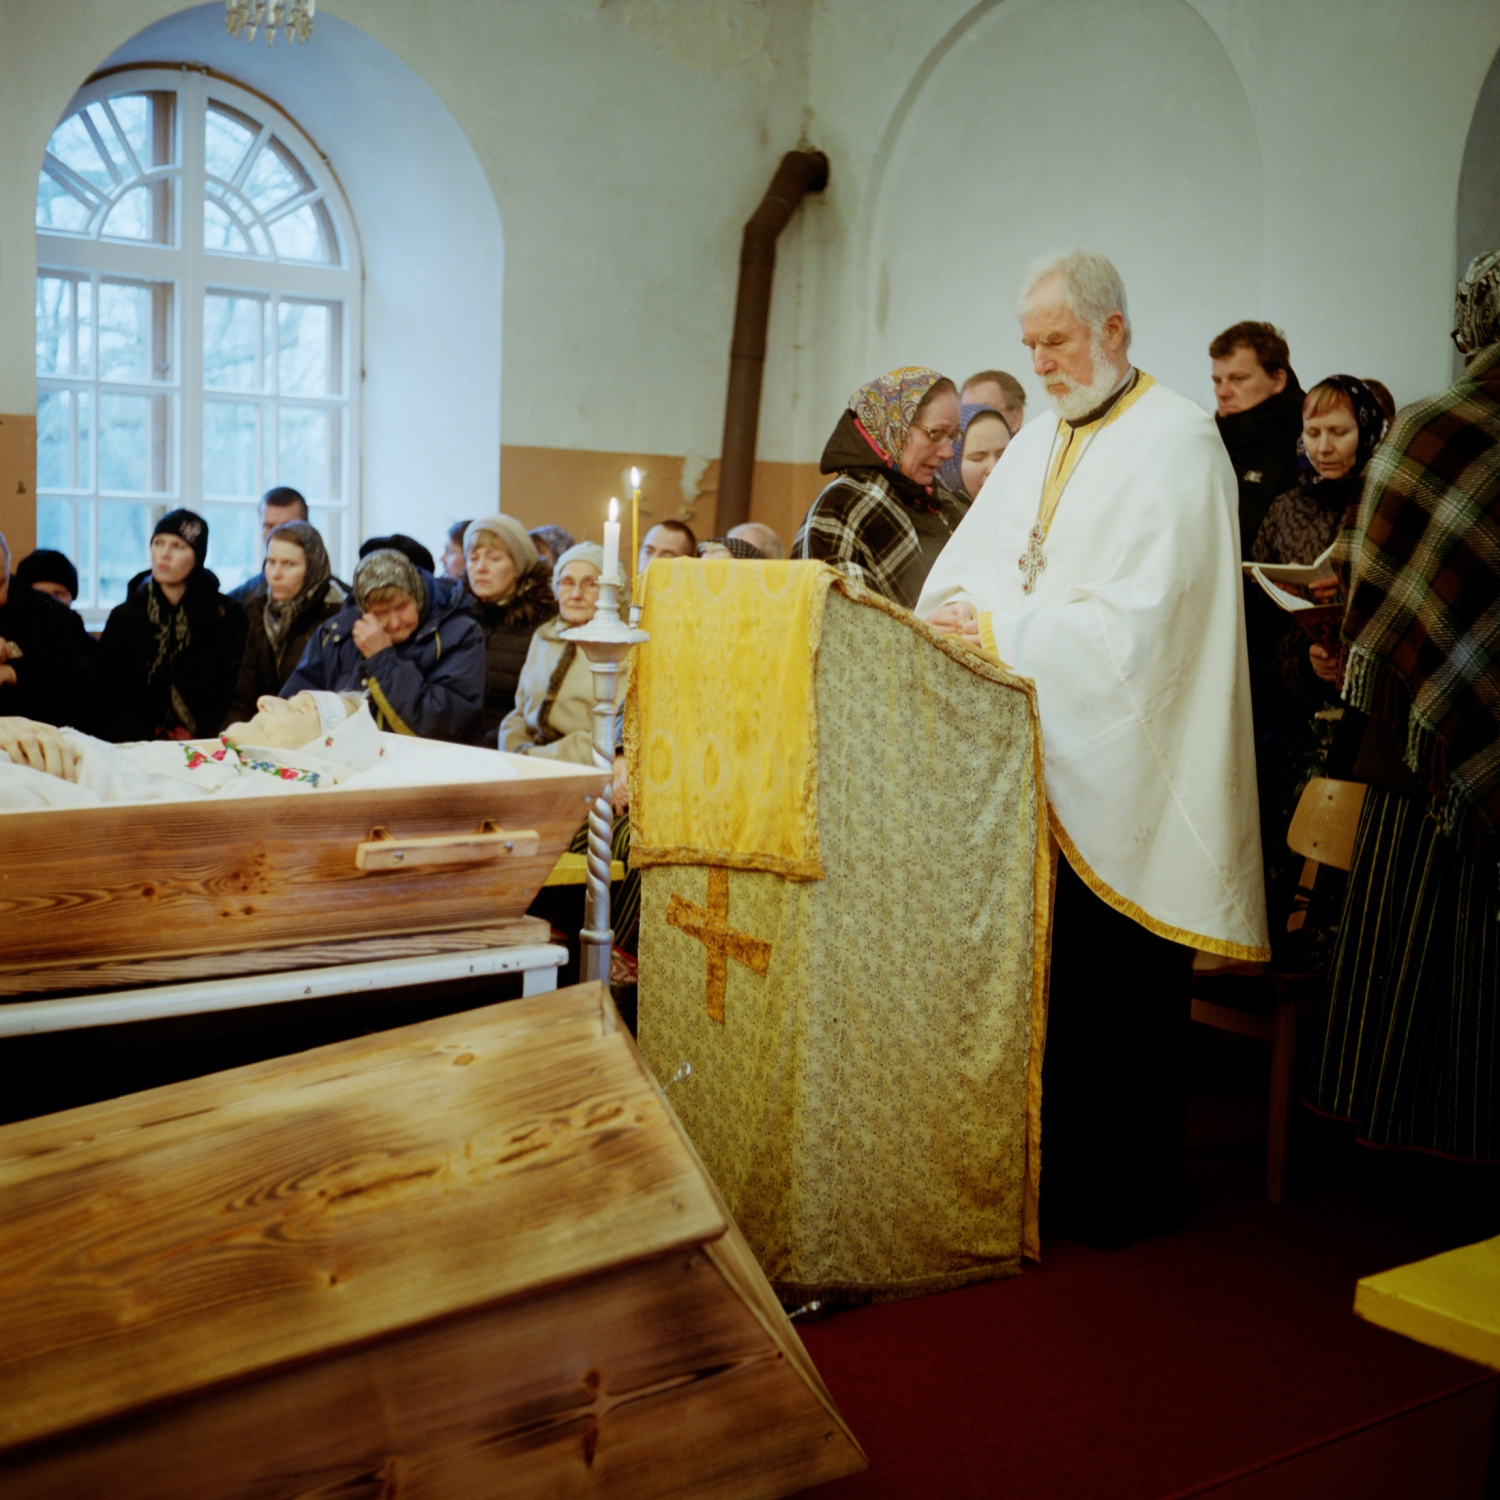 Kandi's funeral led by father Viktor Merik. A women's choir sings during the last farewell at the religious ceremony. Father Merik is from the continent and come to officiate in Kihnu. December 2017.